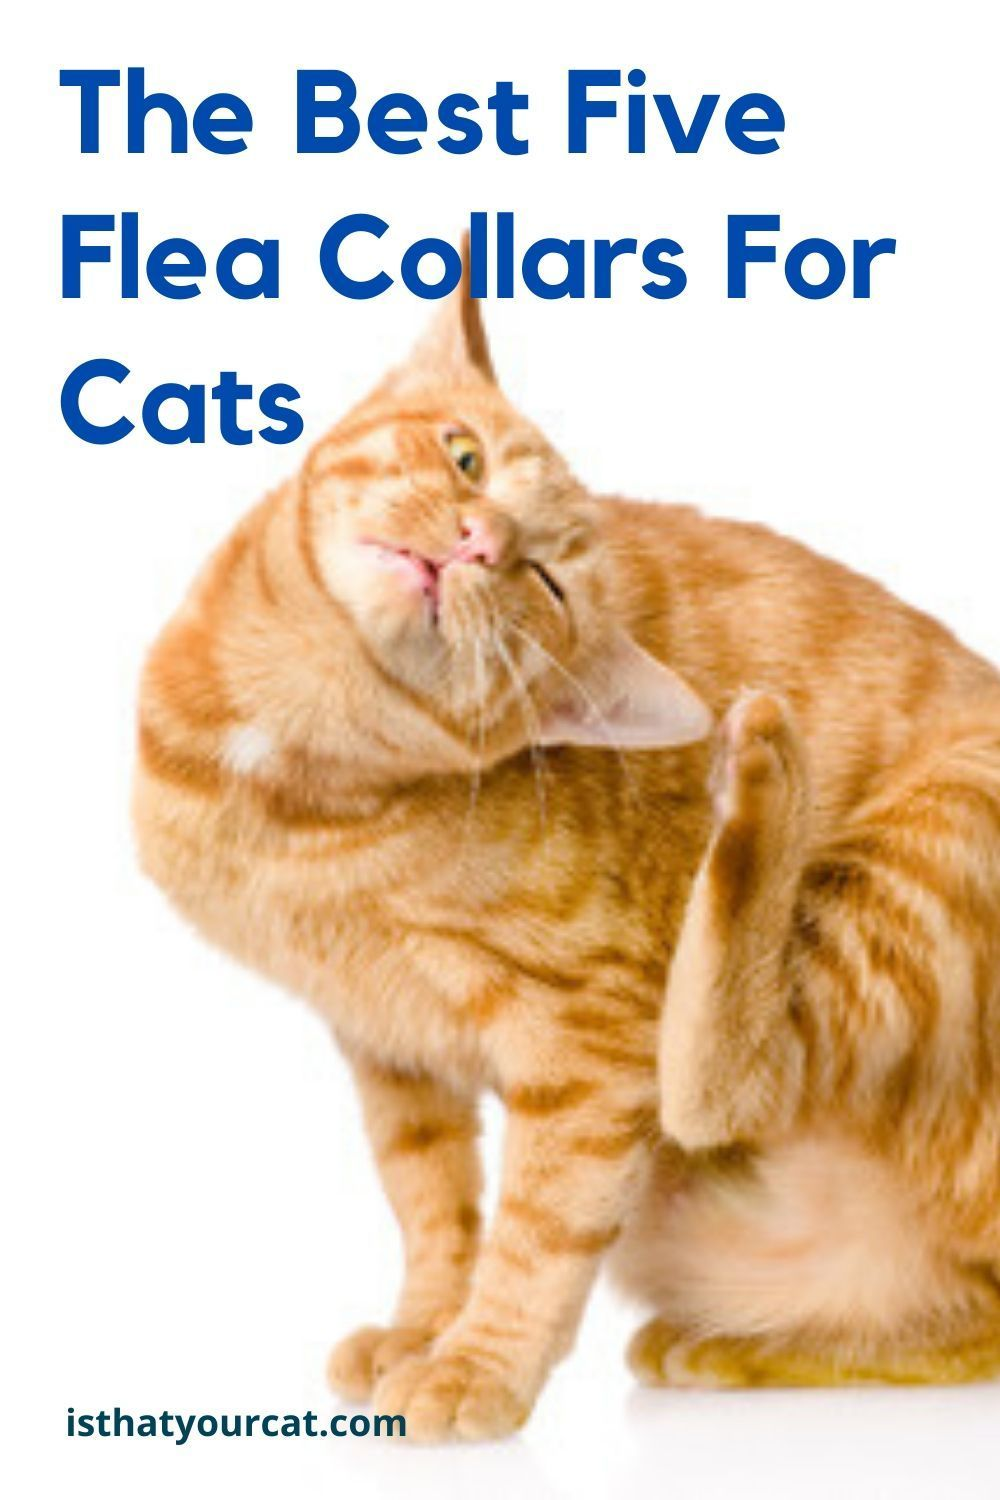 The Five Best Flea Collars For Cats In 2020 Flea Collar Cat Fleas Cat Flea Collar